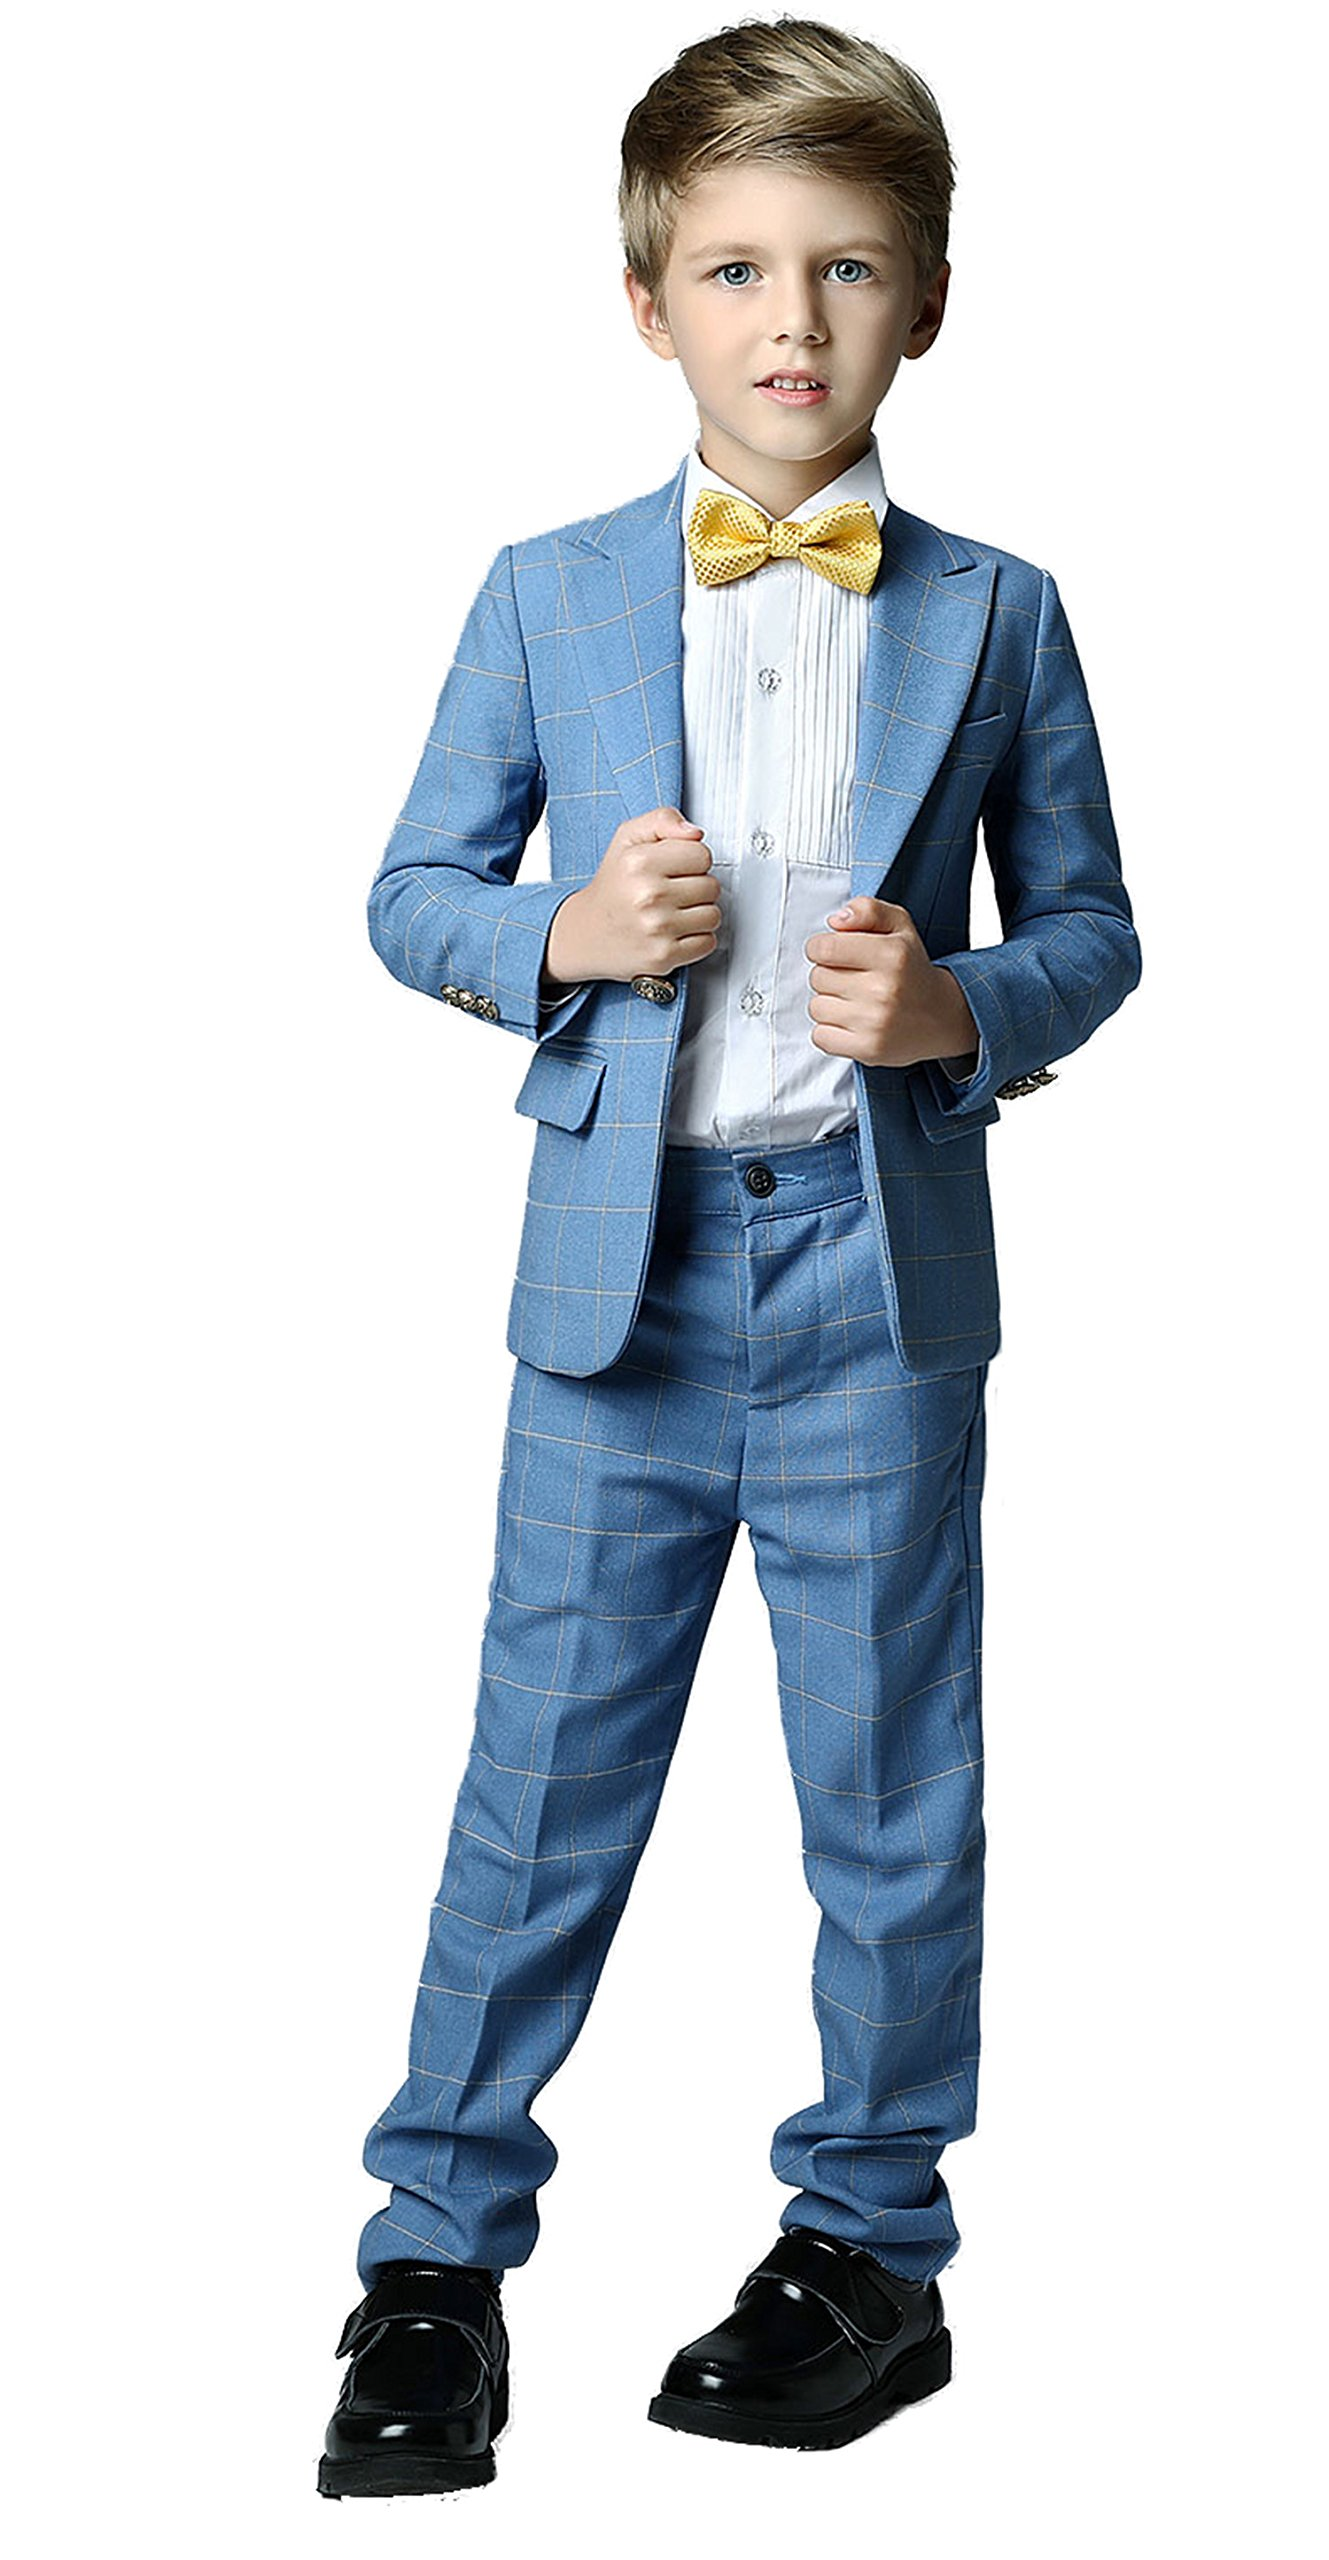 Yanlu Formal Dress Slim Fit Boys Plaid Suits for Toddler Wedding Size 6 Blue